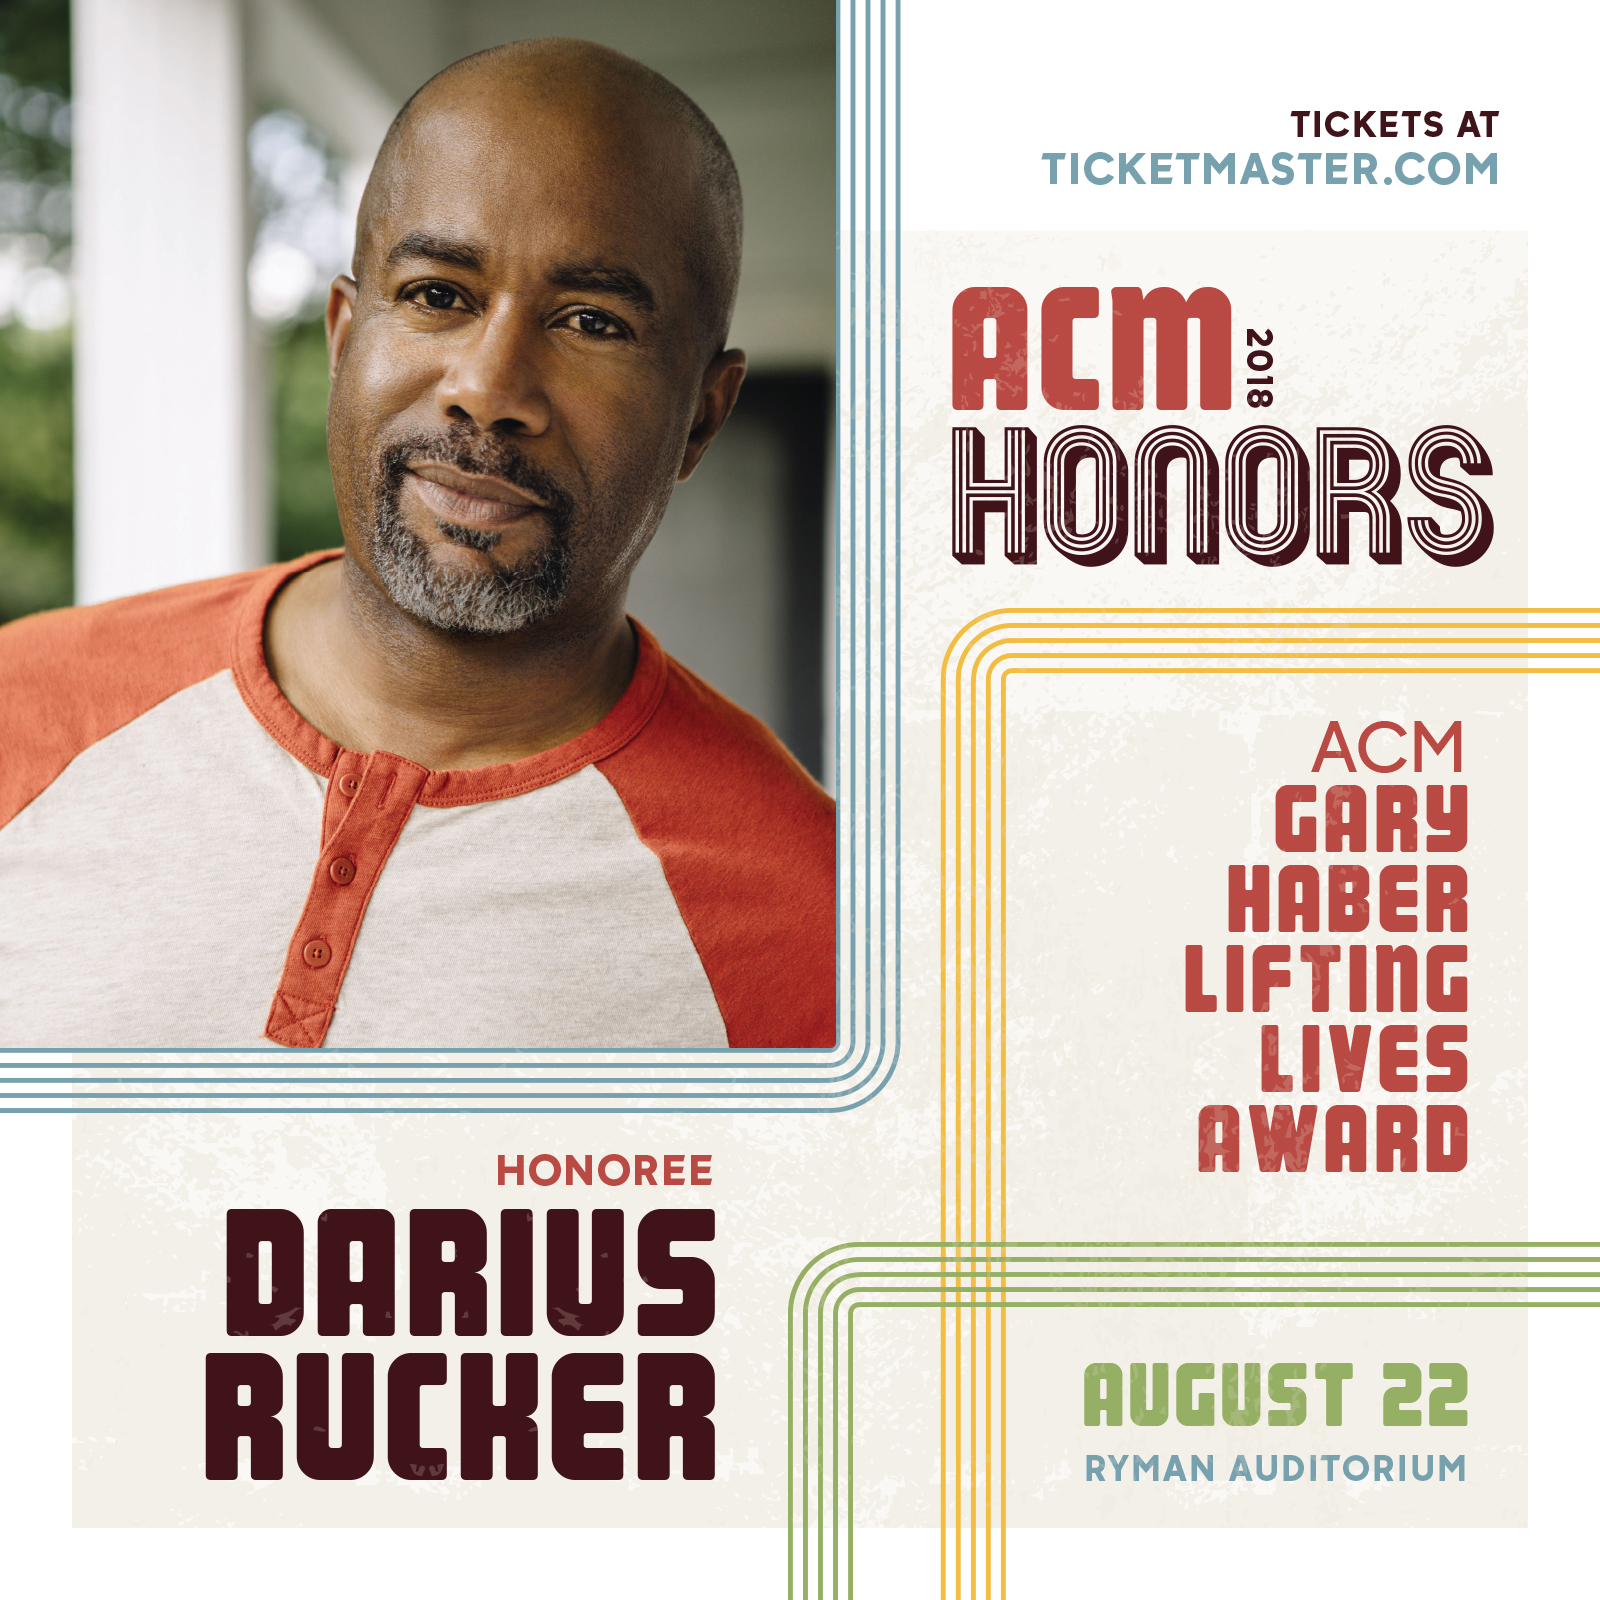 Darius To Accept the ACM Gary Habers Lifting Lives Award at ACM Honors 2018